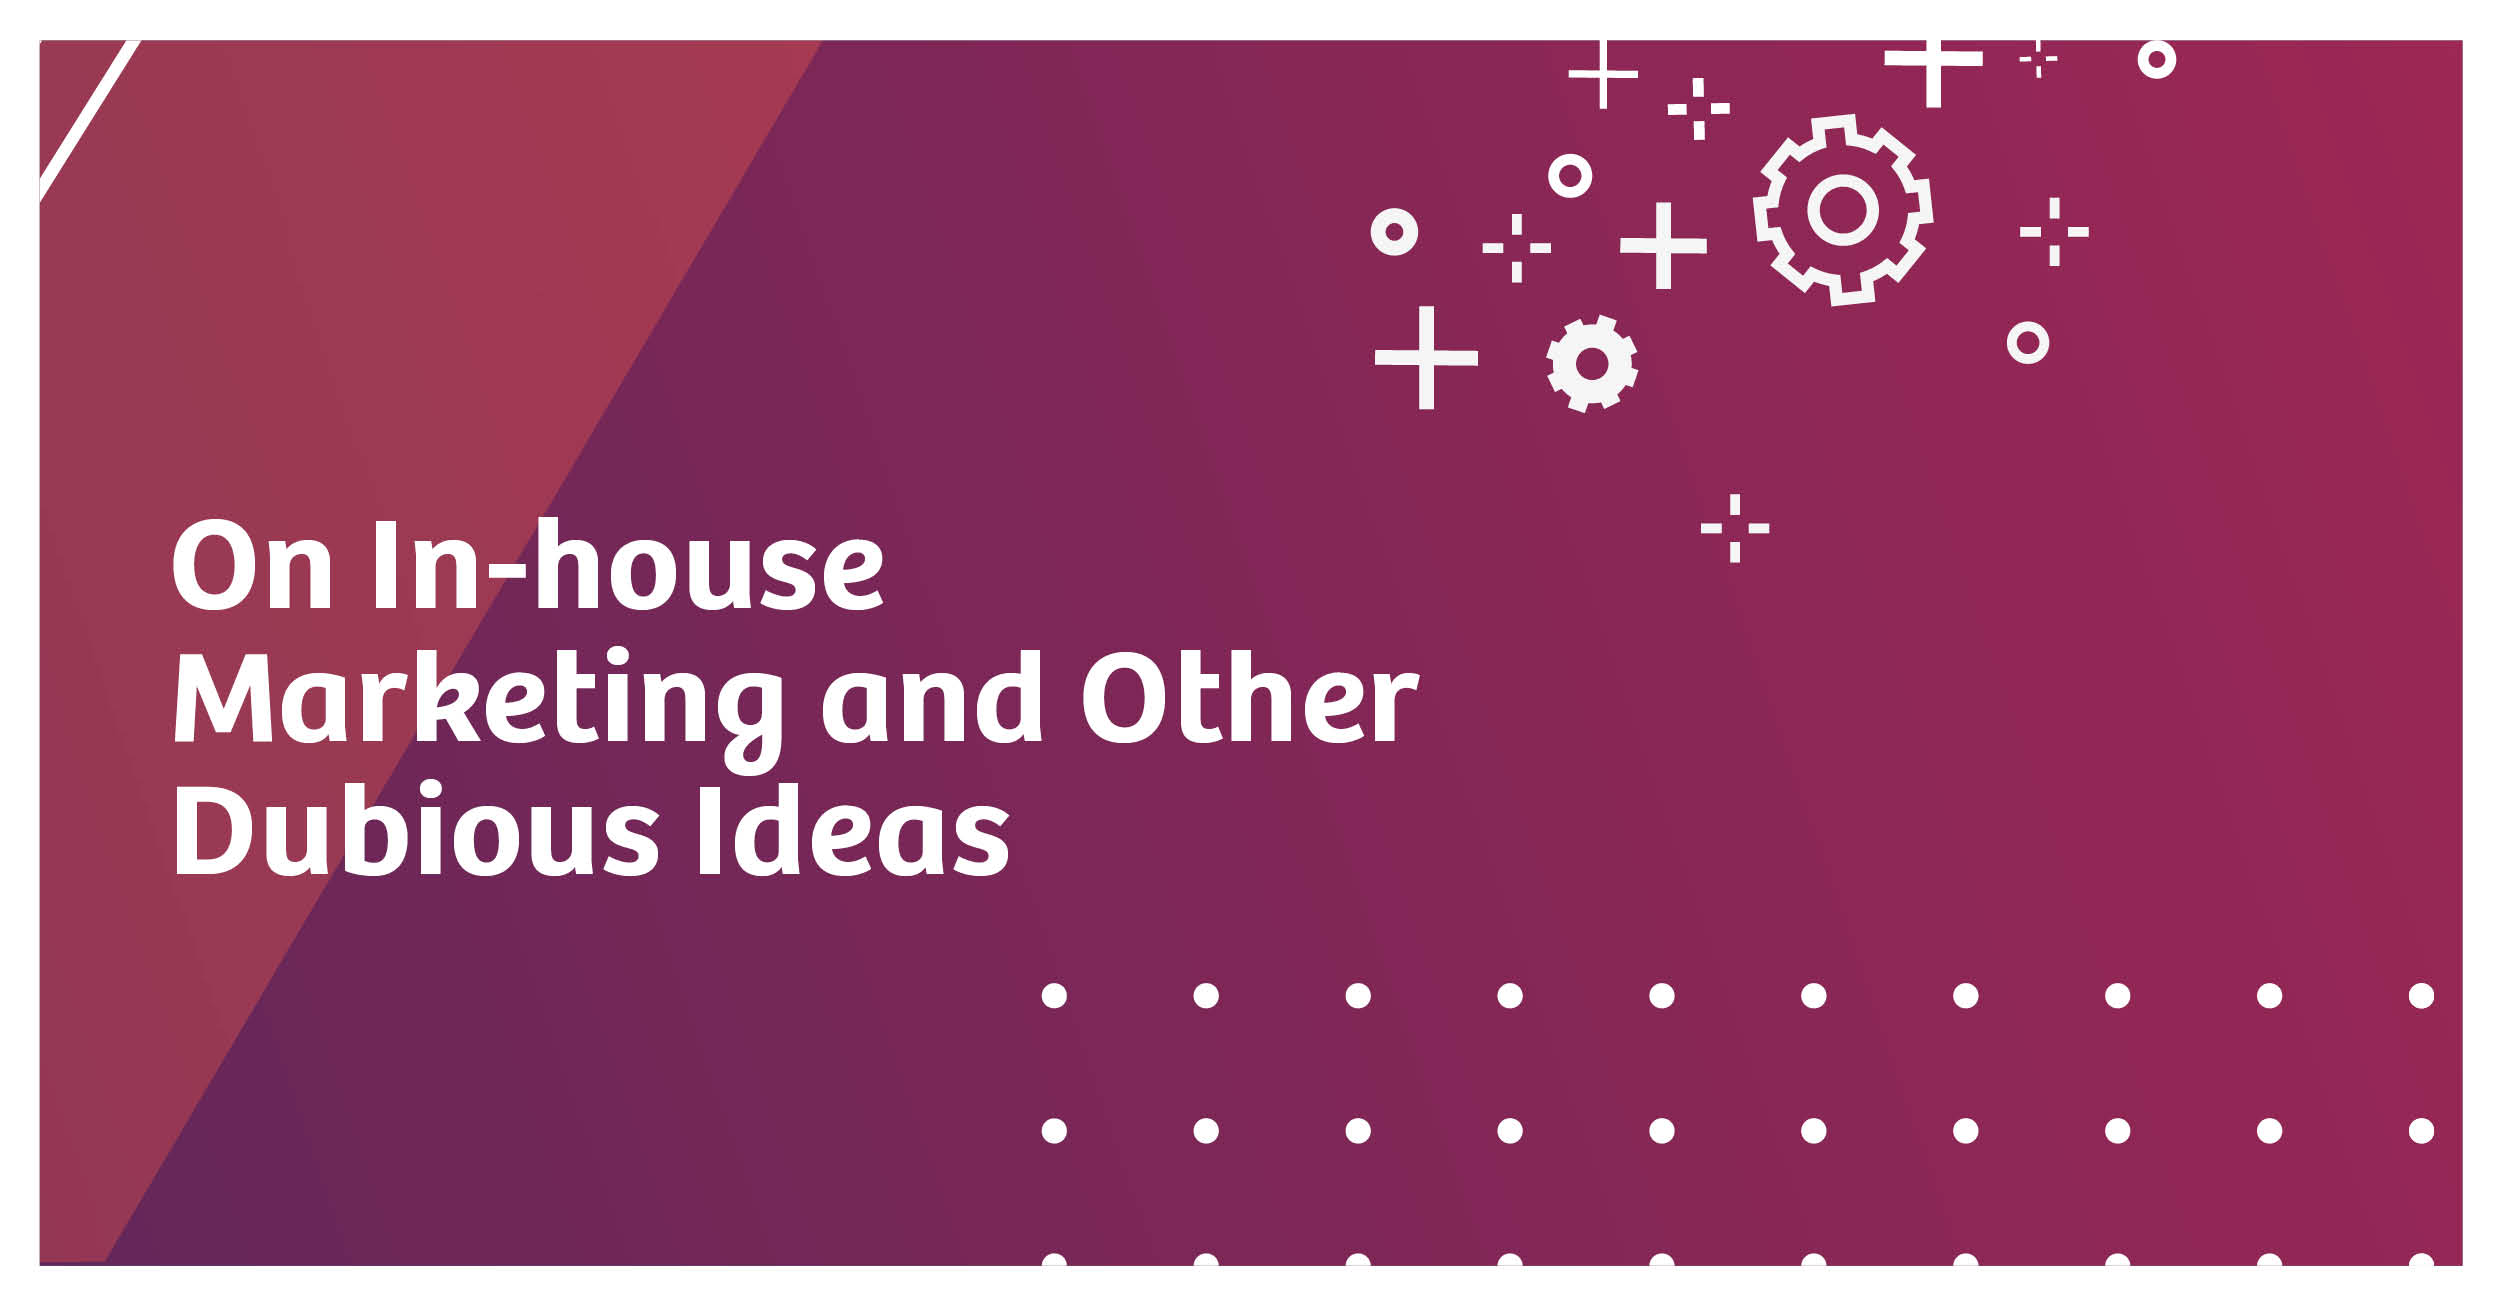 In-house Marketing and Other Dubious Ideas